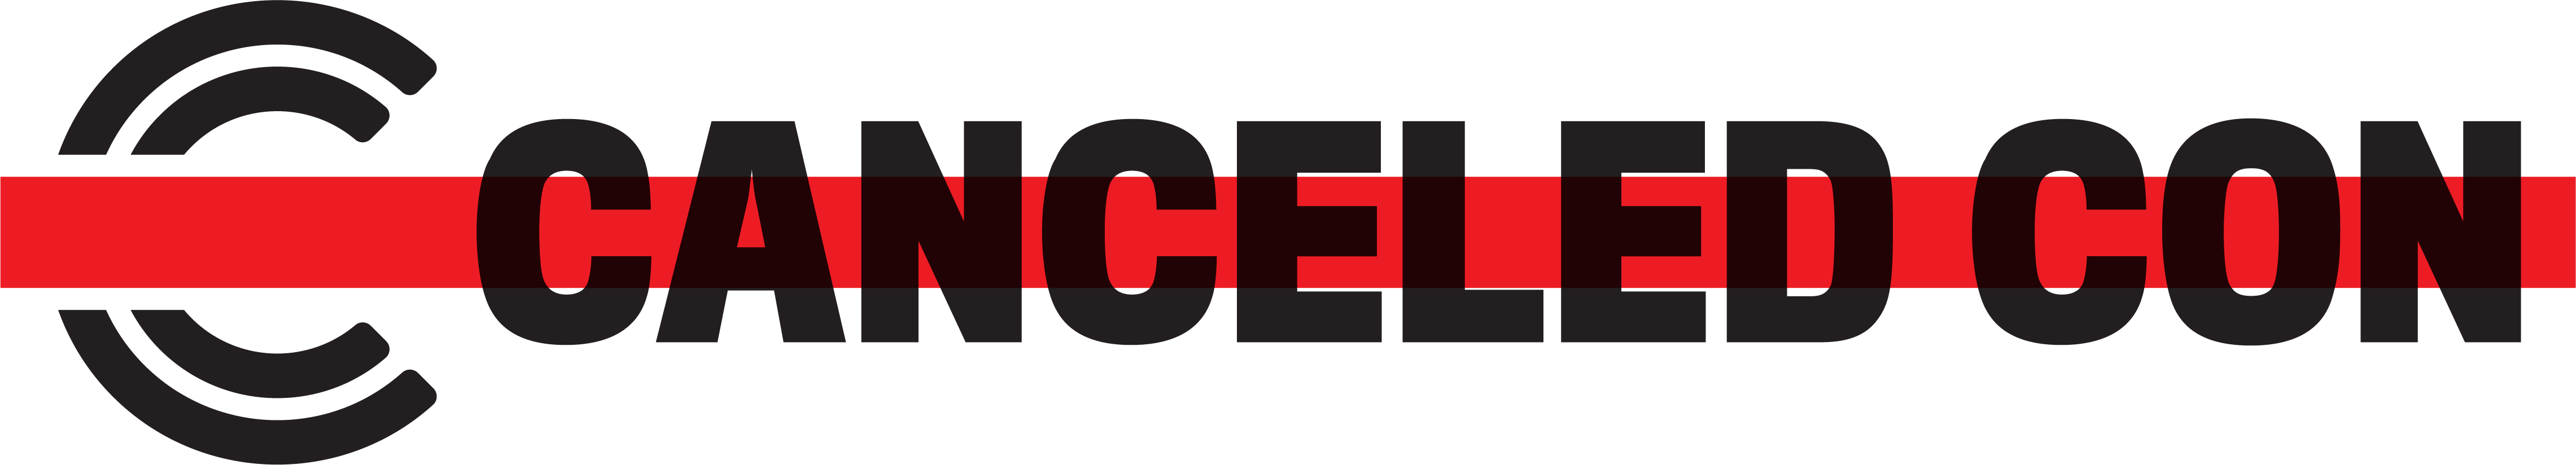 CanceledCon_Logo_Wide